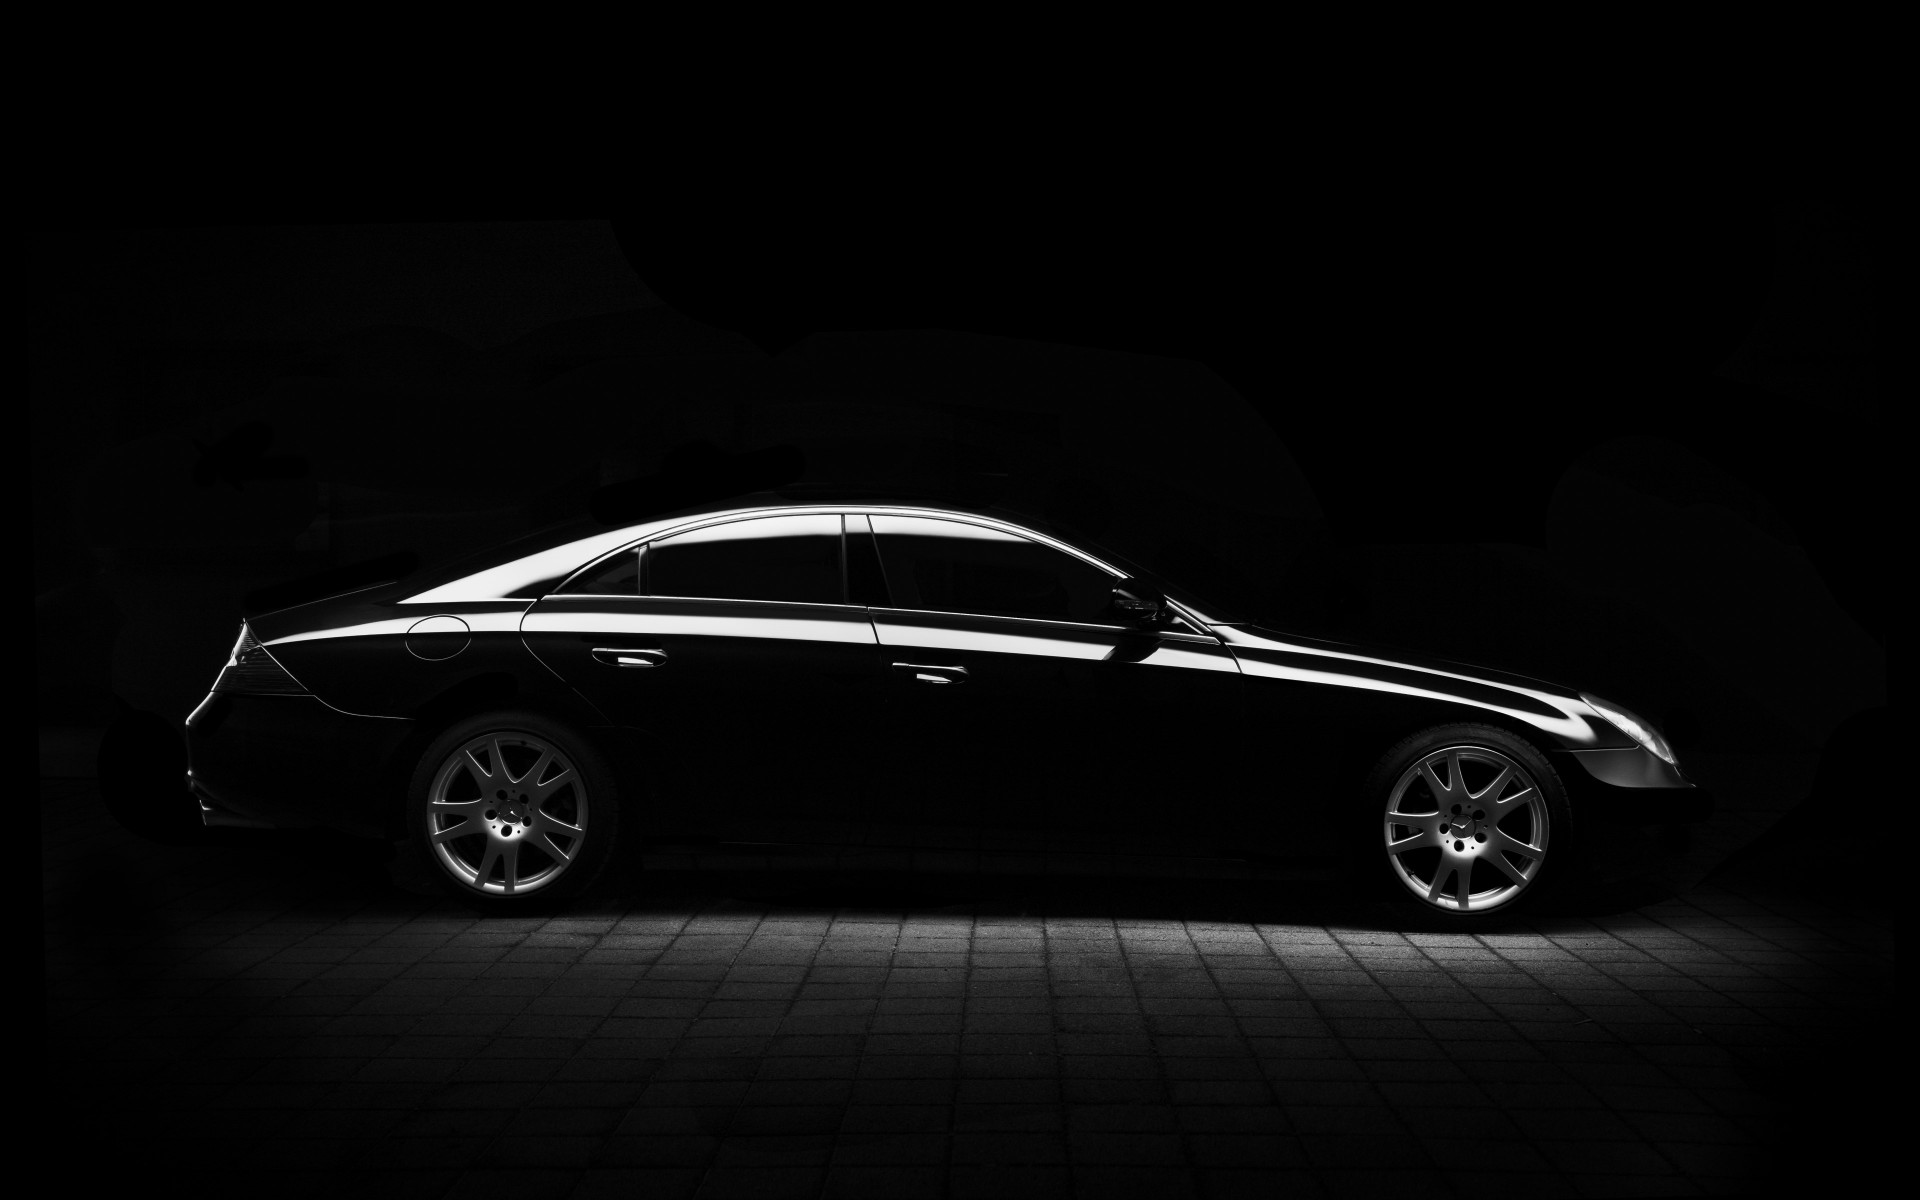 Silhouette of a Mercedes car wallpaper 1920x1200